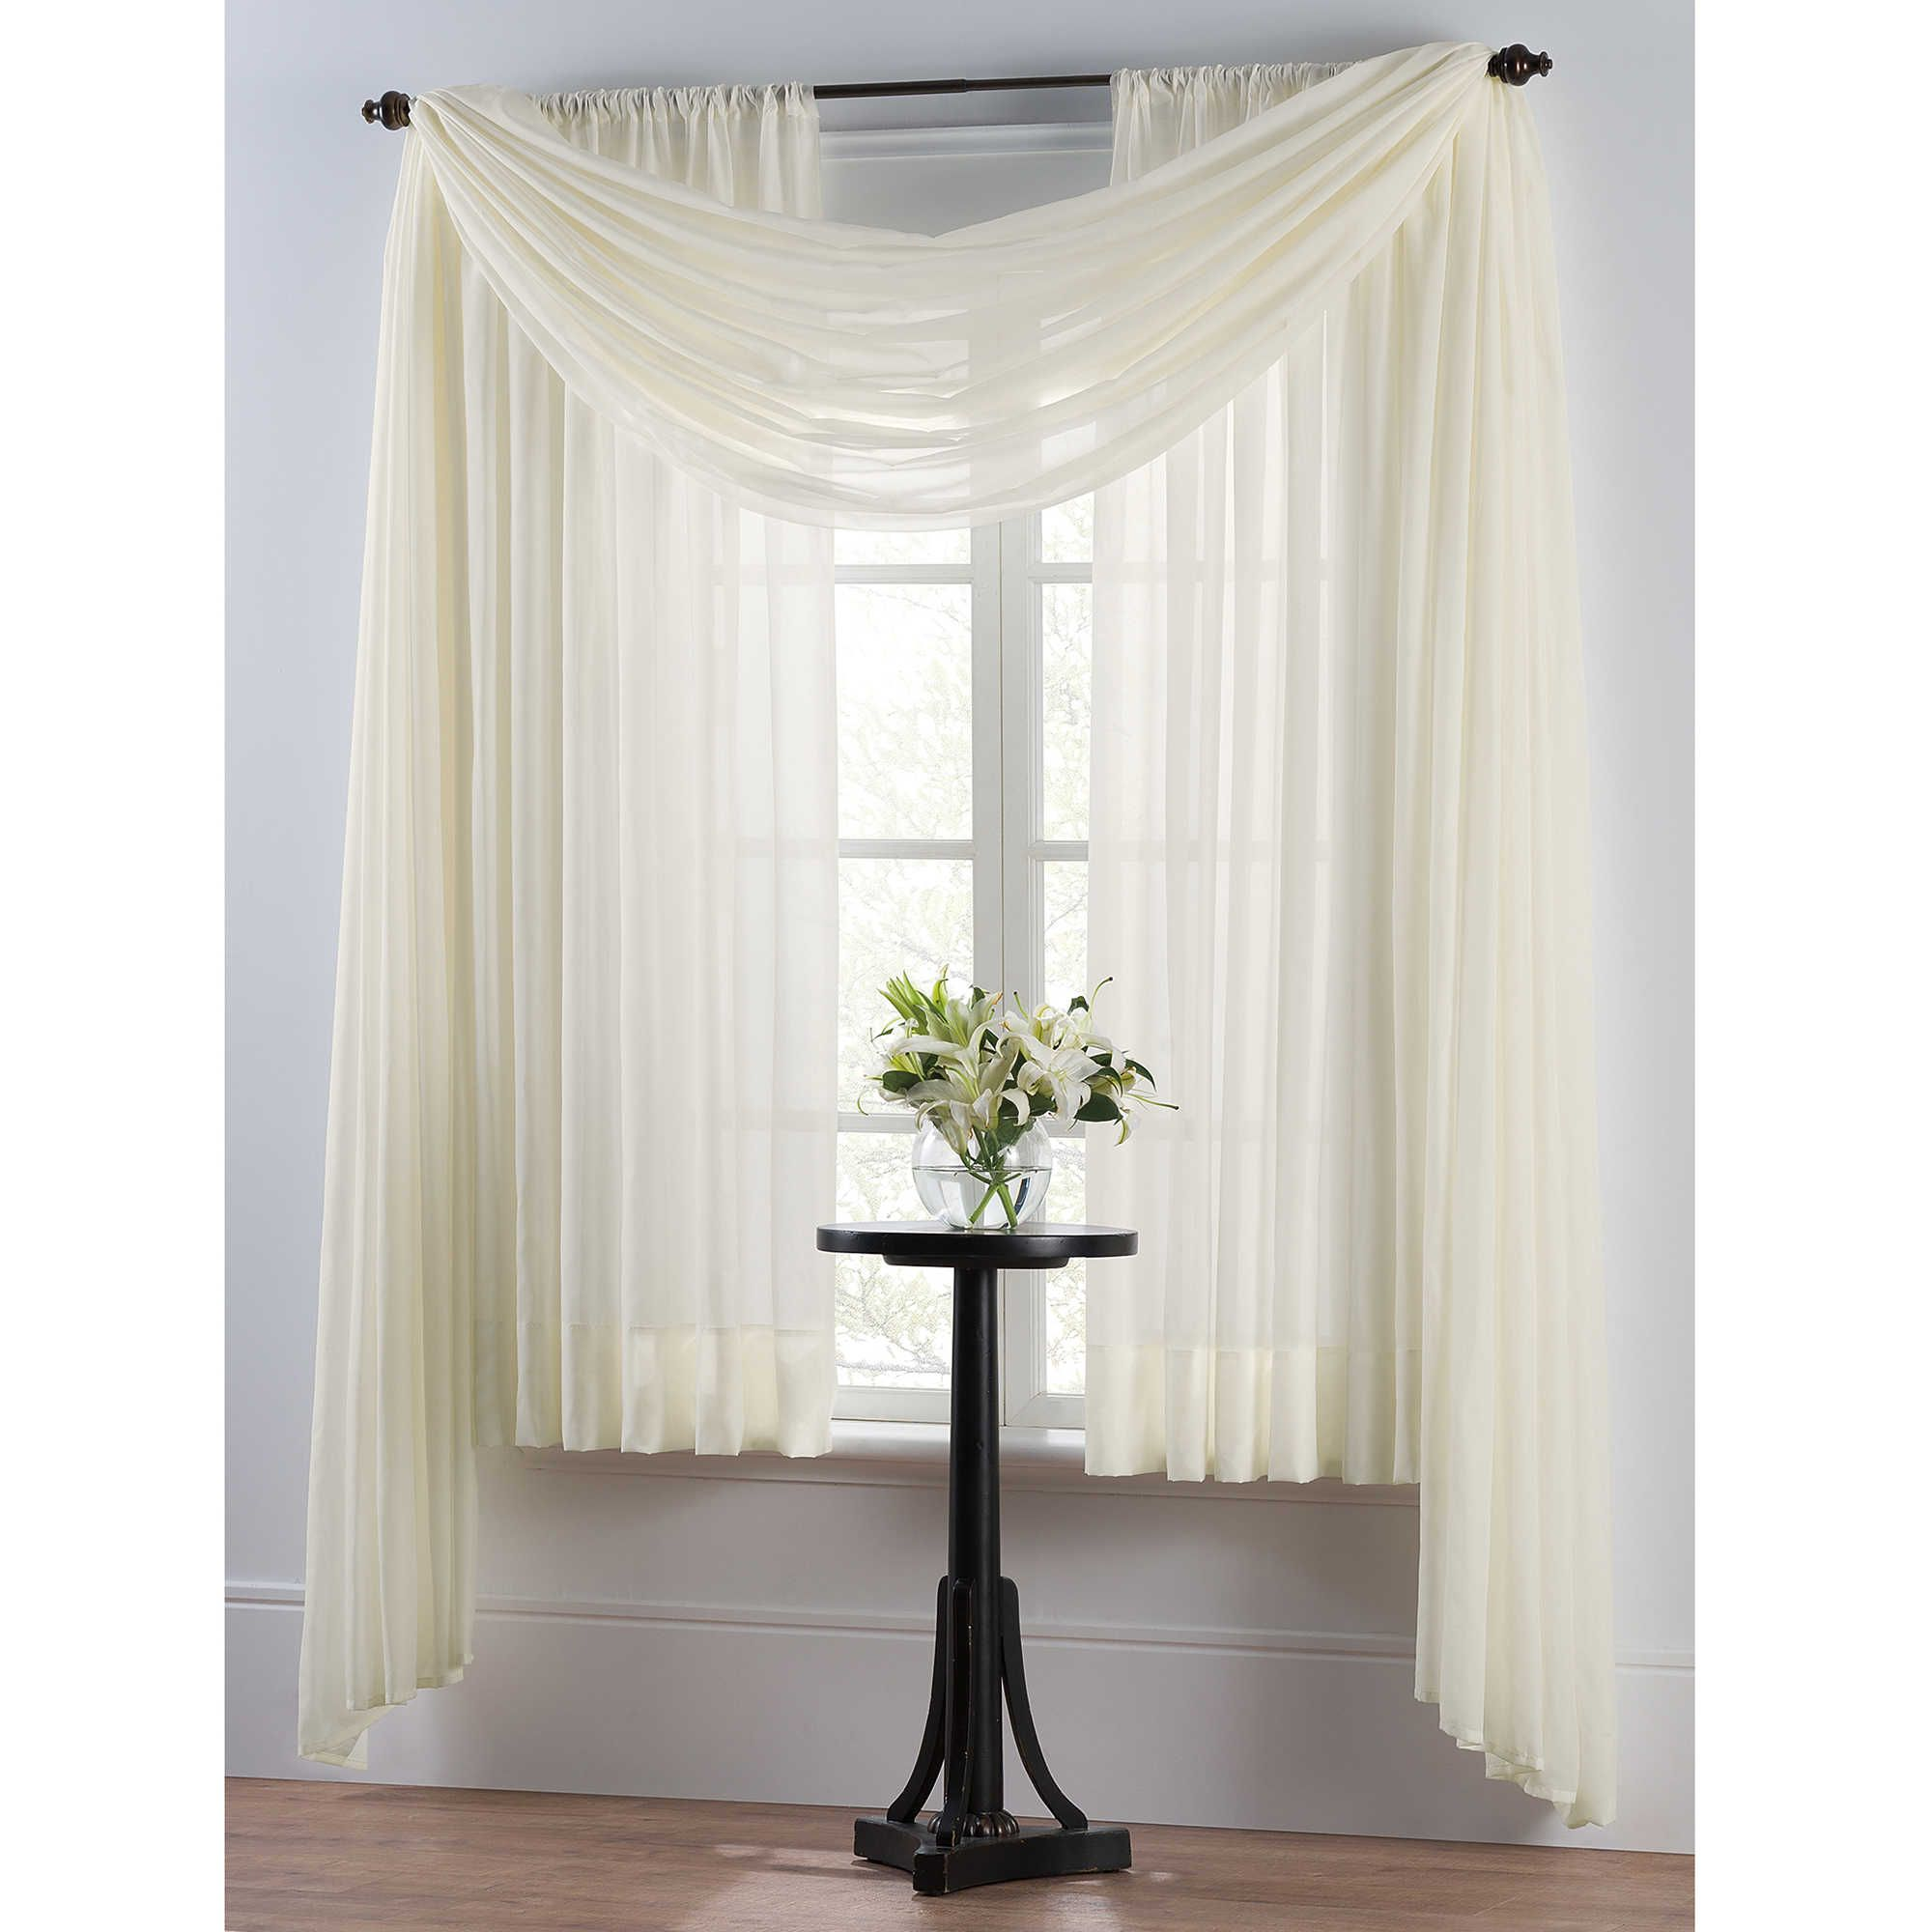 "smart sheera""¢ insulating voile window curtain panel alamo square"